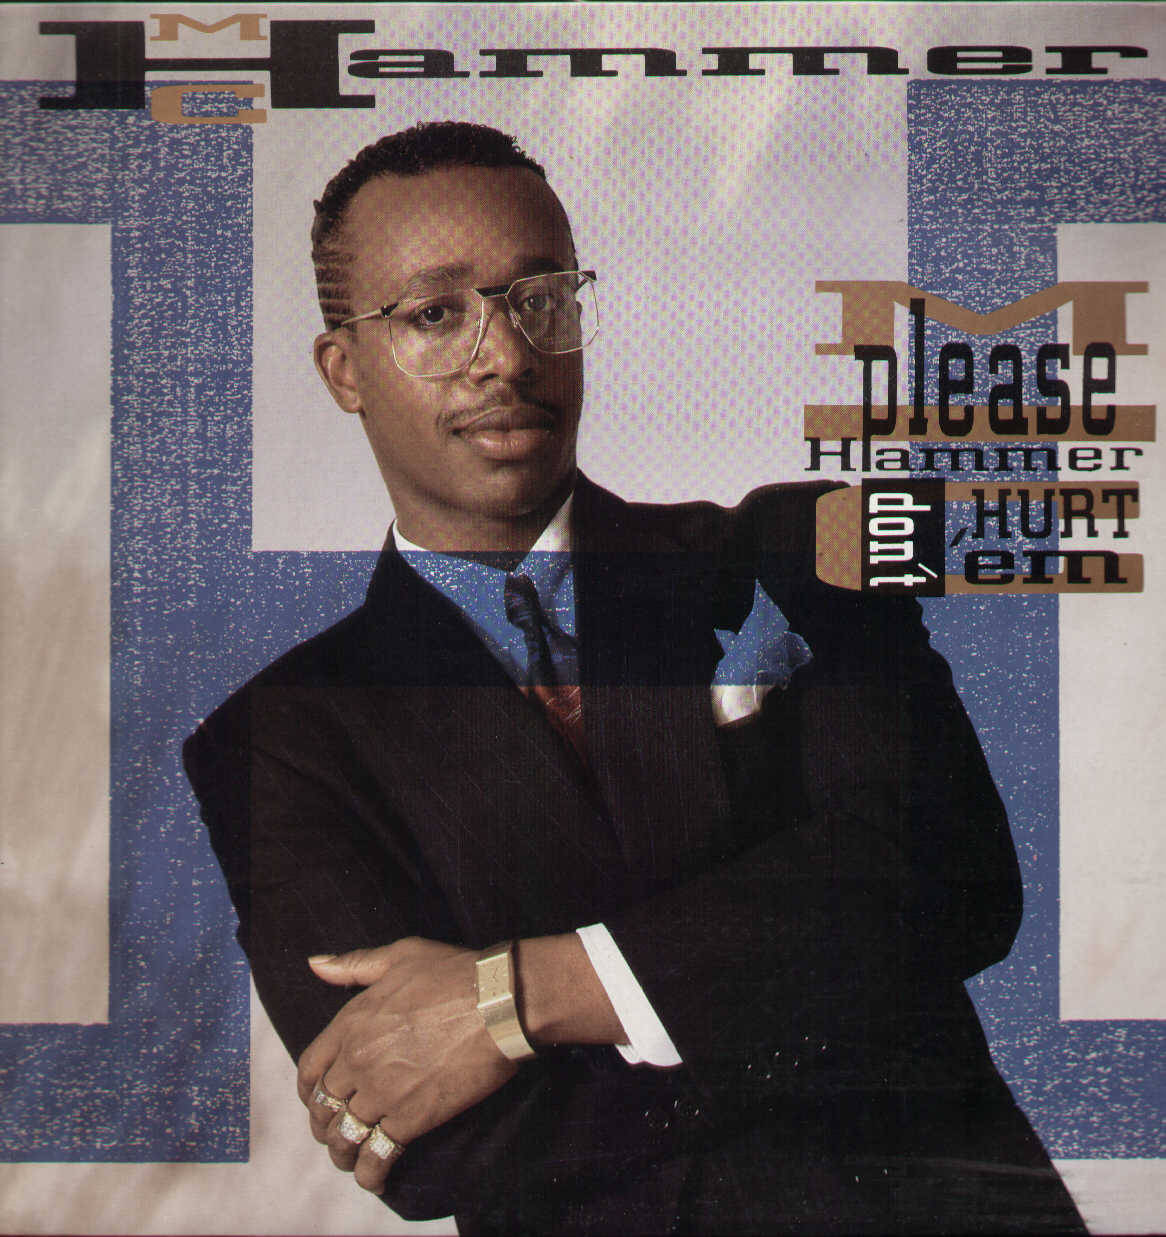 BACK IN THE DAY |2/12/90| MC Hammer released his third album, Please Hammer, Don't Hurt 'Em, on Capitol Records.